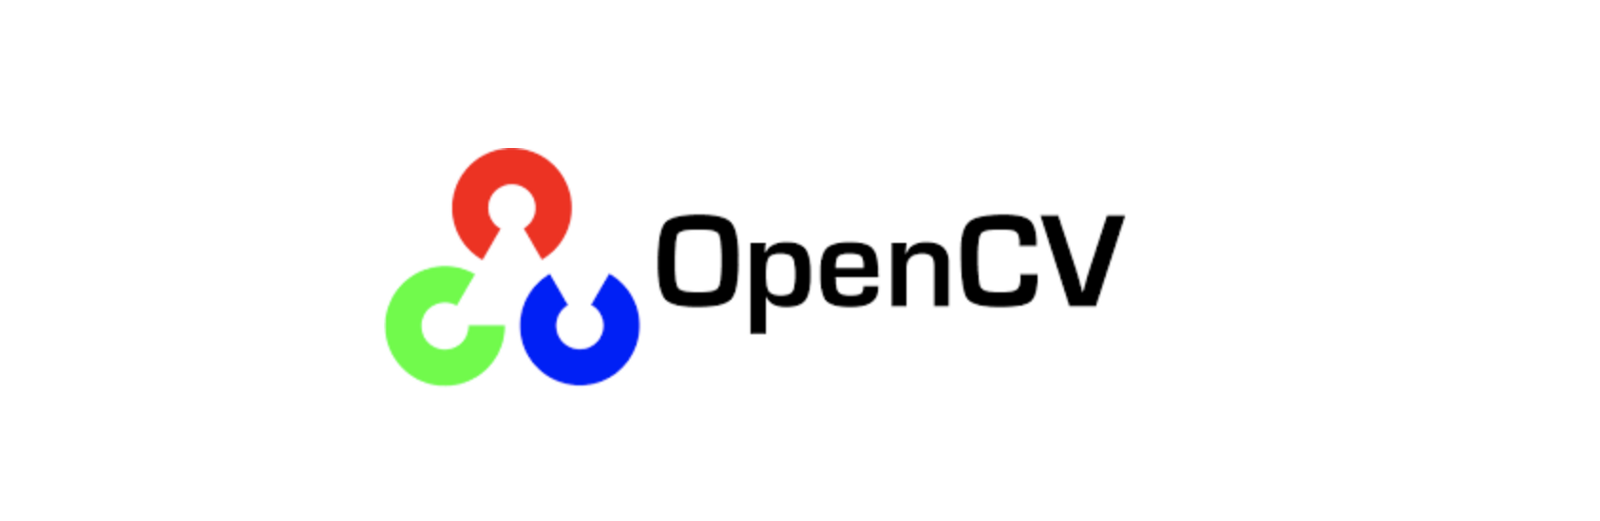 How To Install OpenCV On CentOS 8